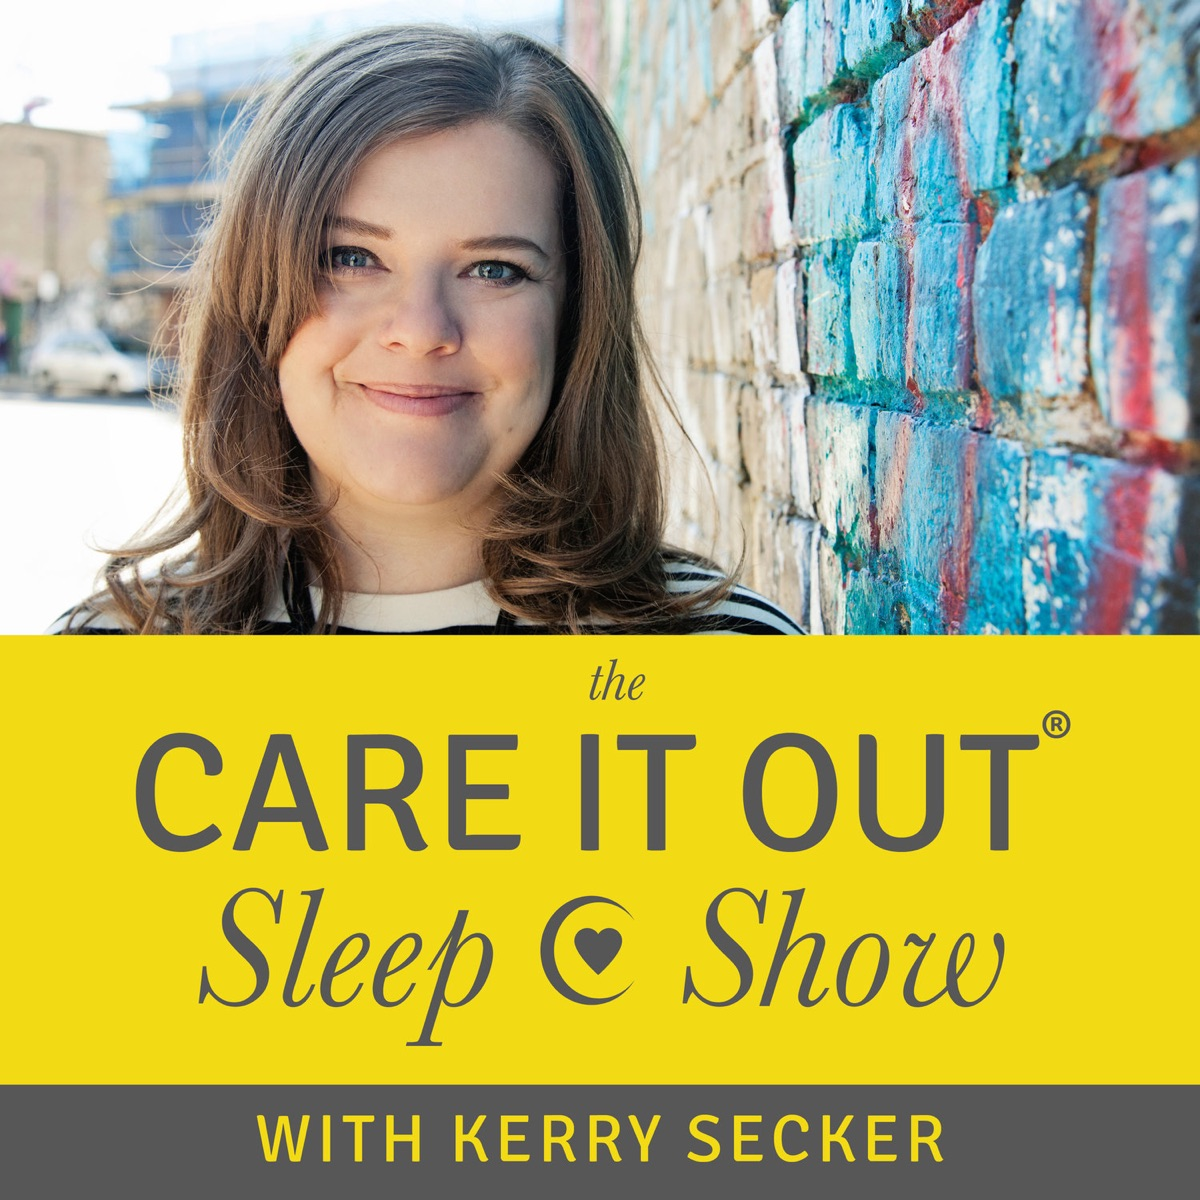 The Care It Out Sleep Show